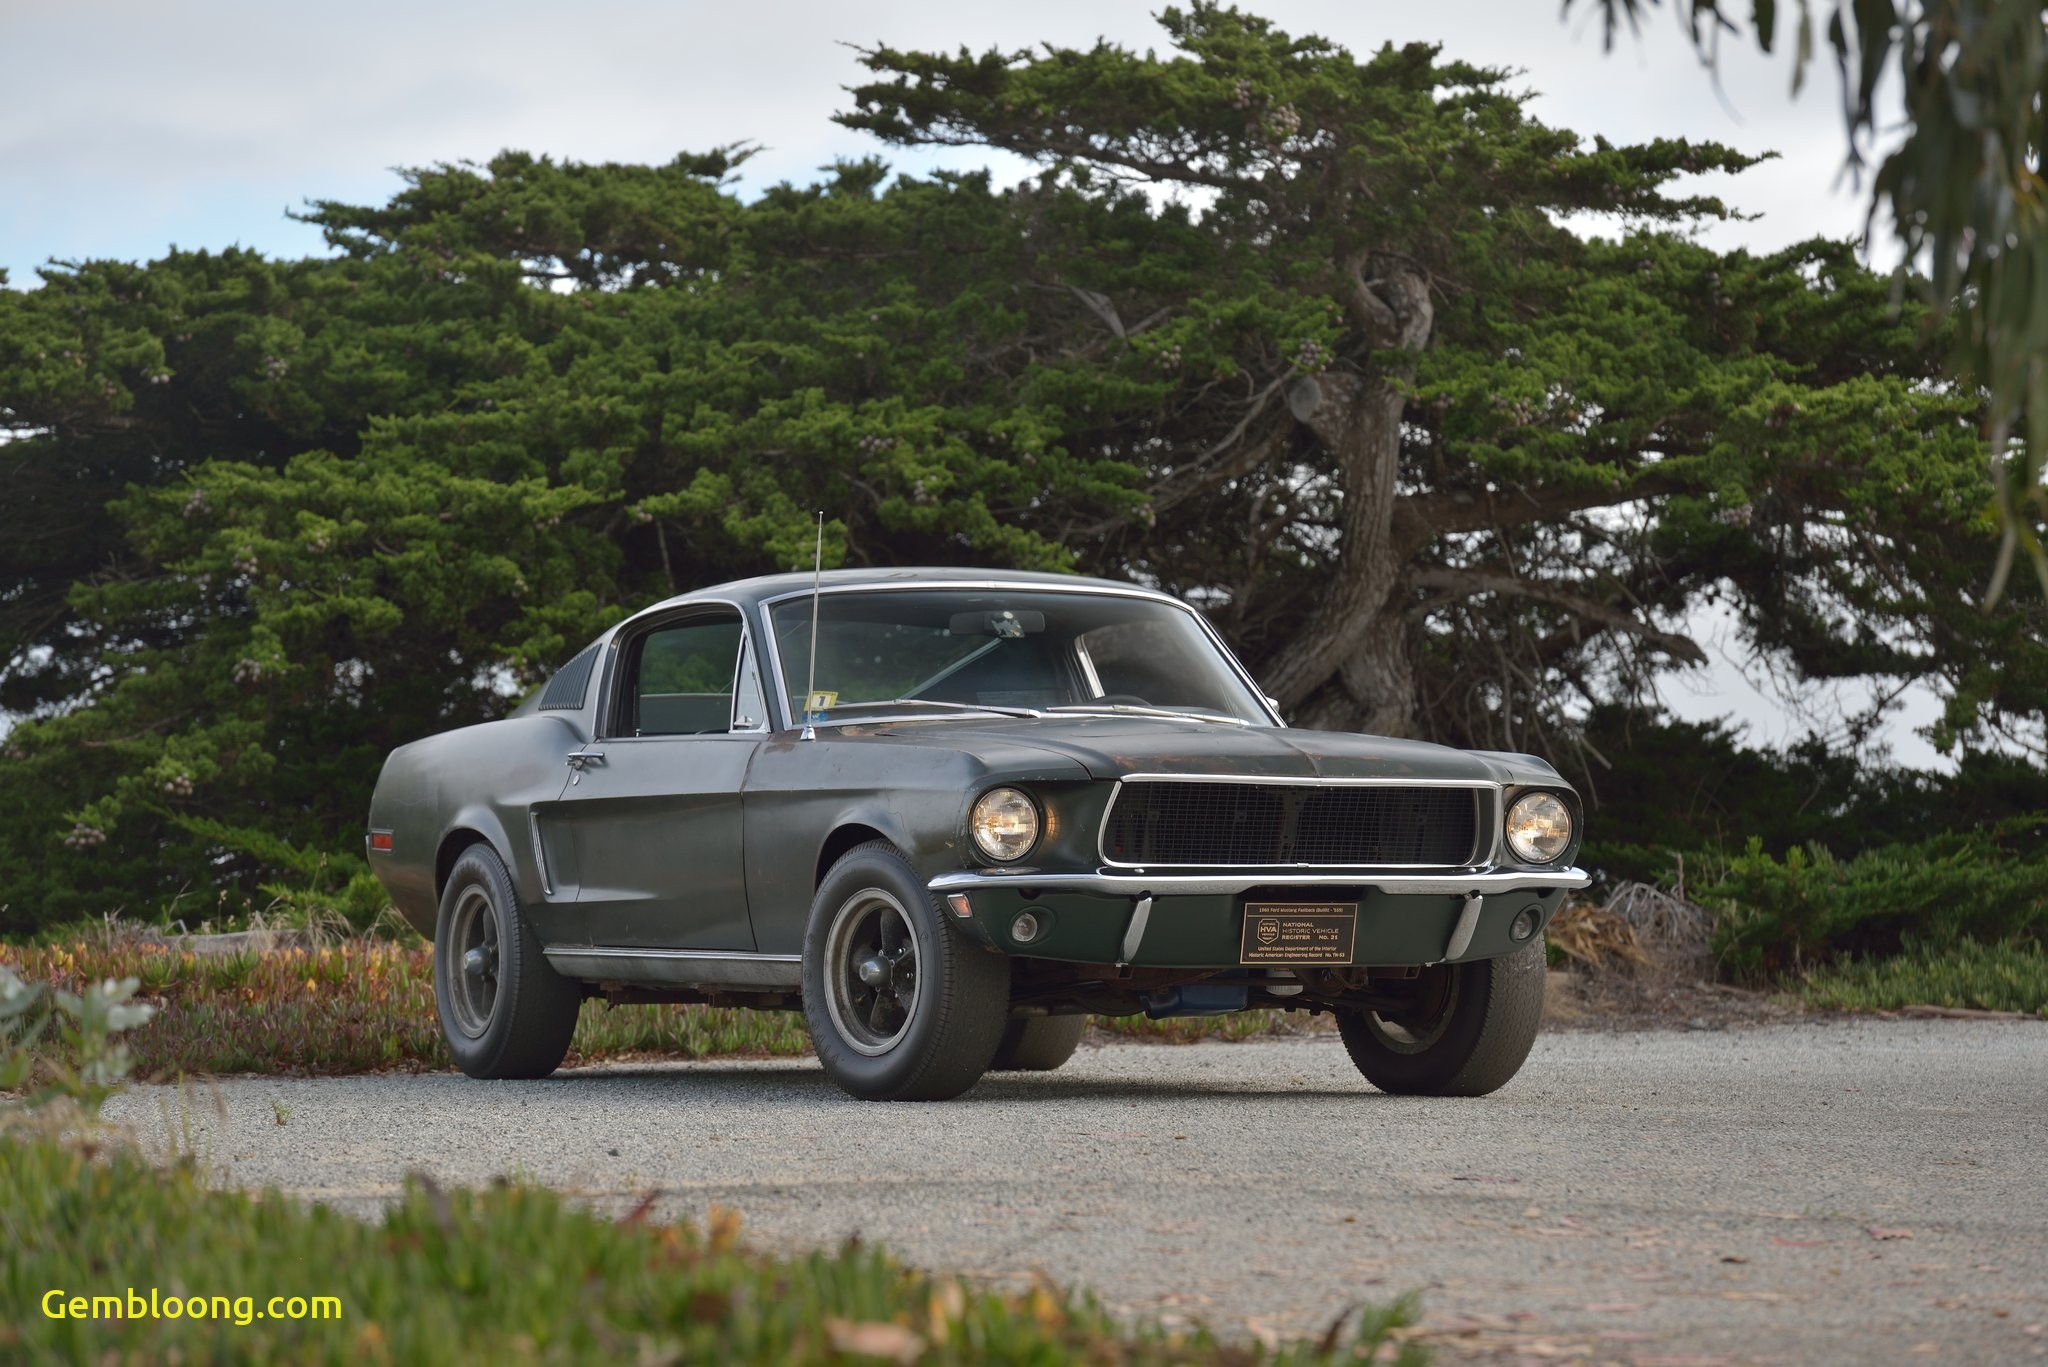 Muscle Cars for Sale Elegant Mustang From Famed Bullitt Car Chase Heads to Auction